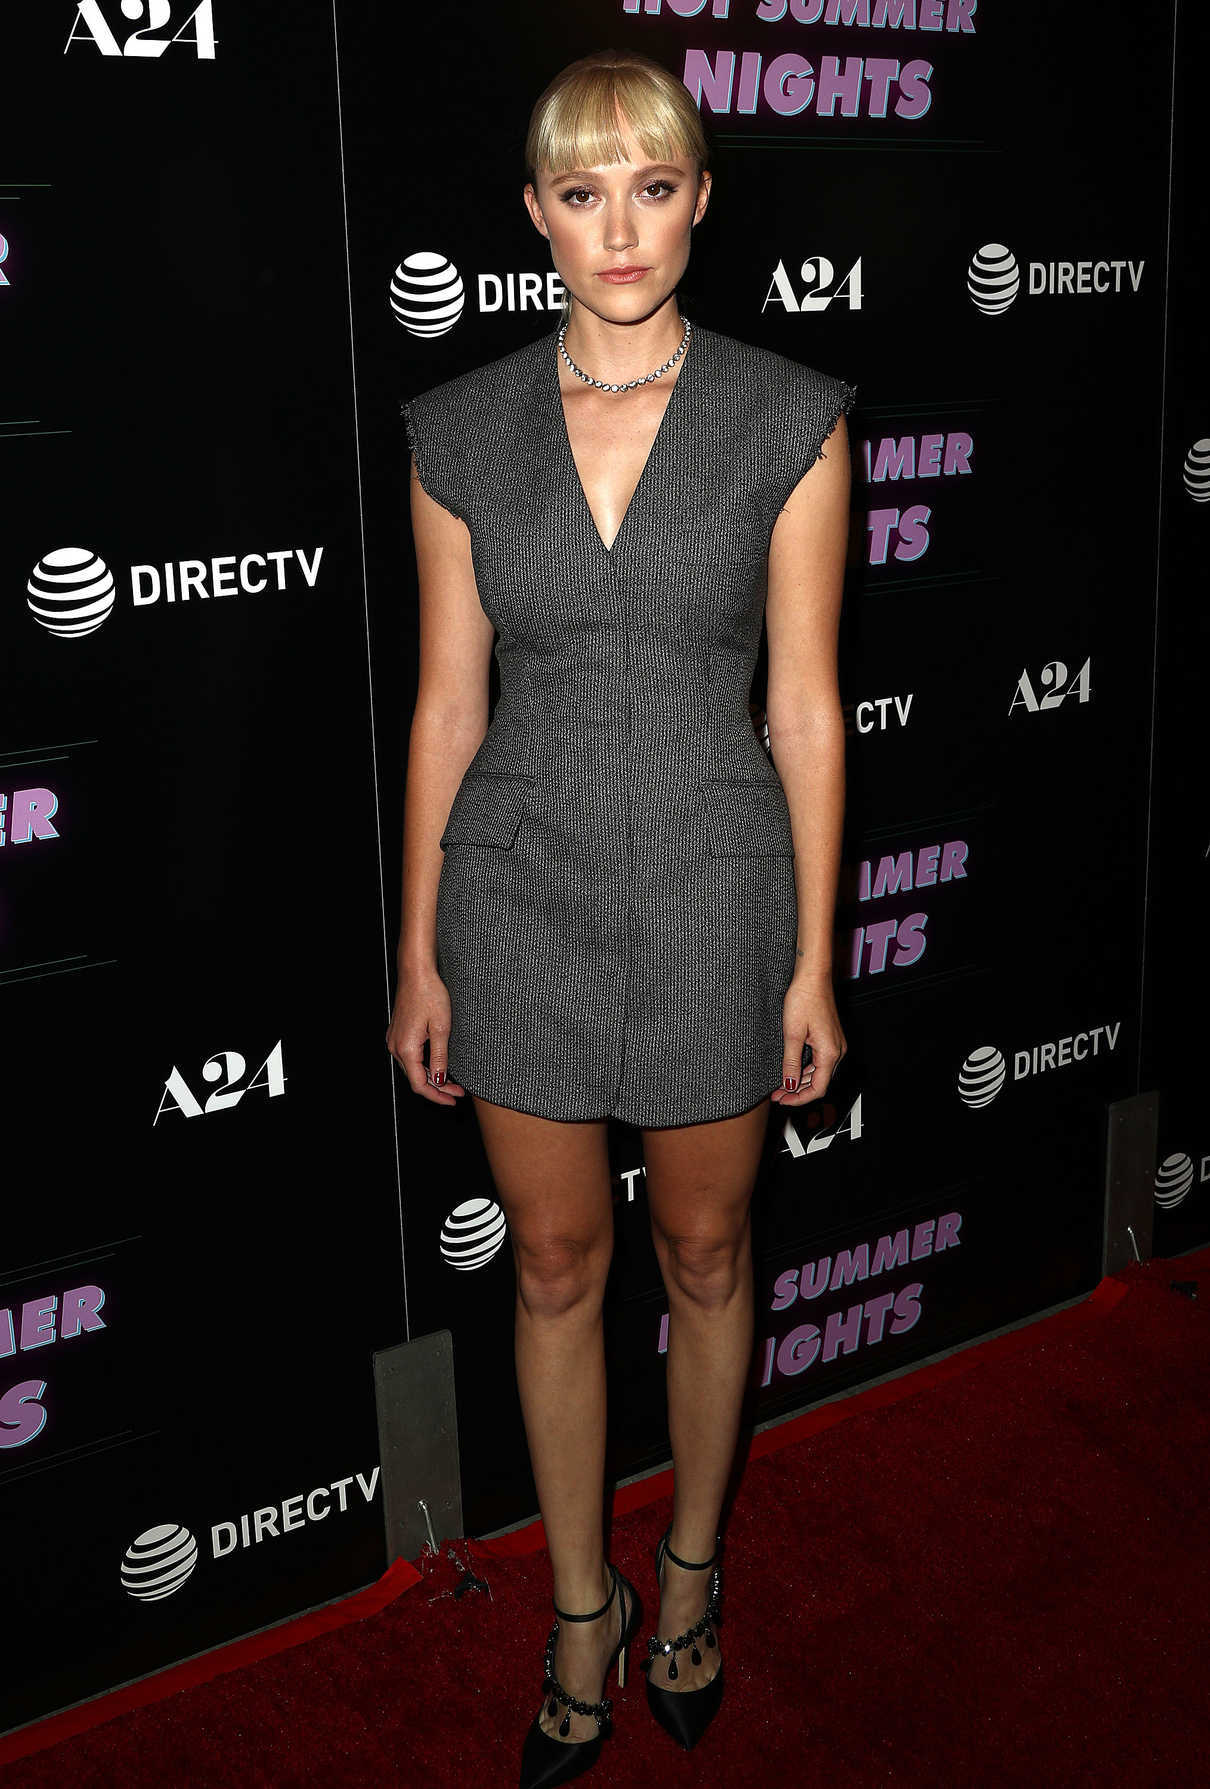 Maika Monroe Attends the Hot Summer Nights Screening in Los Angeles 07/11/2018-1